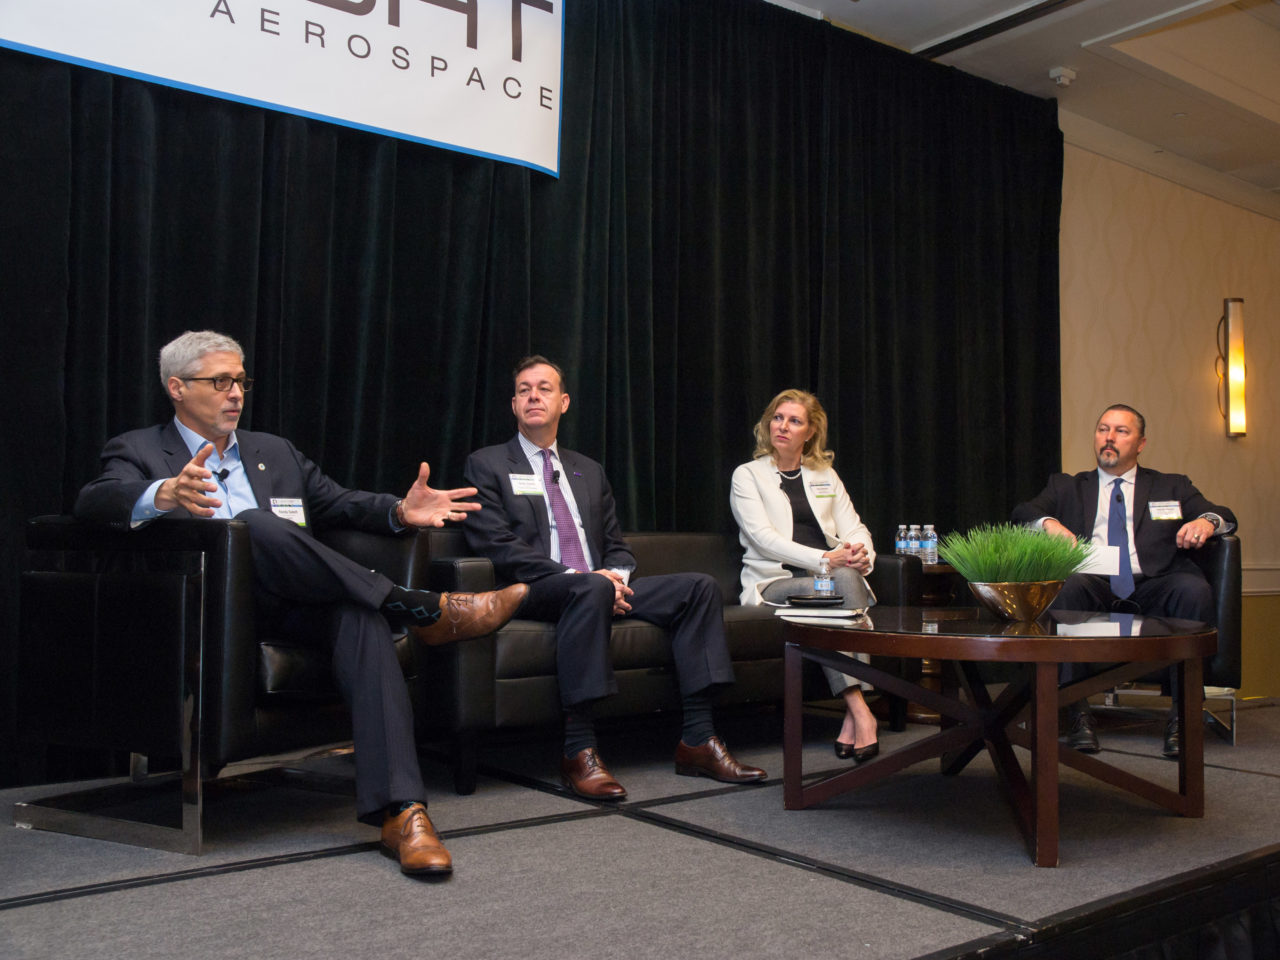 L-R: Randy Sabett, head of Cooley's cyber practice; Greg Touhill, president of Cyxtera; Lisa Donnan, managing director at Option3Ventures; James Turgal, executive assistant director of the FBI's information and technology branch. Photo: Access Intelligence/Vince Lim.